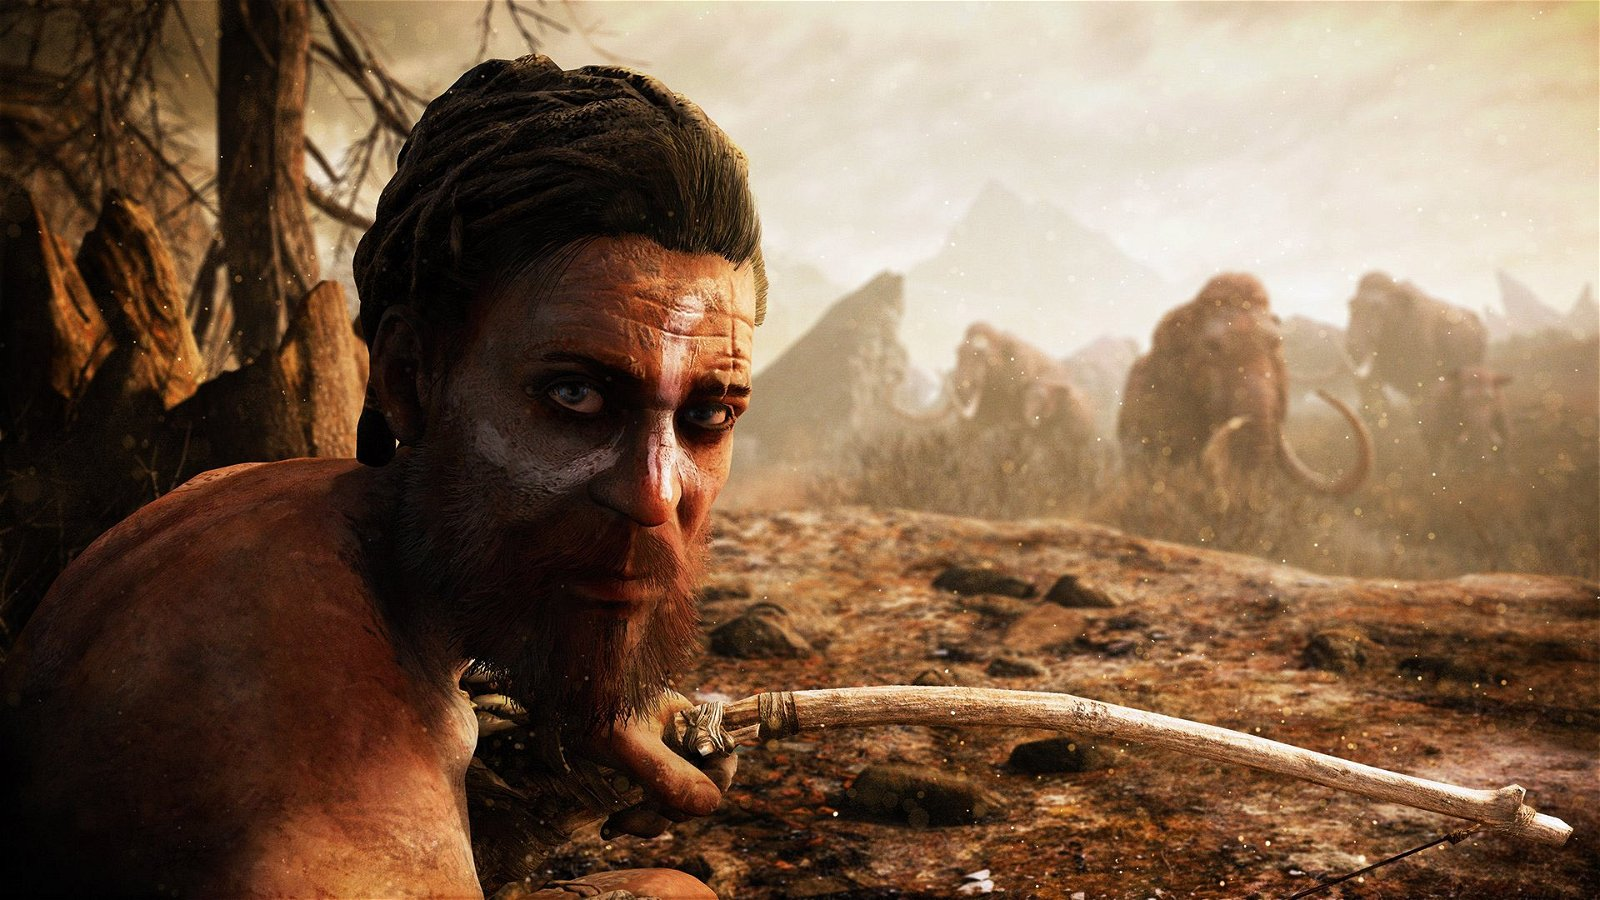 Far Cry Primal Preview: Welcome to the Savage Land - 2016-01-26 11:41:46